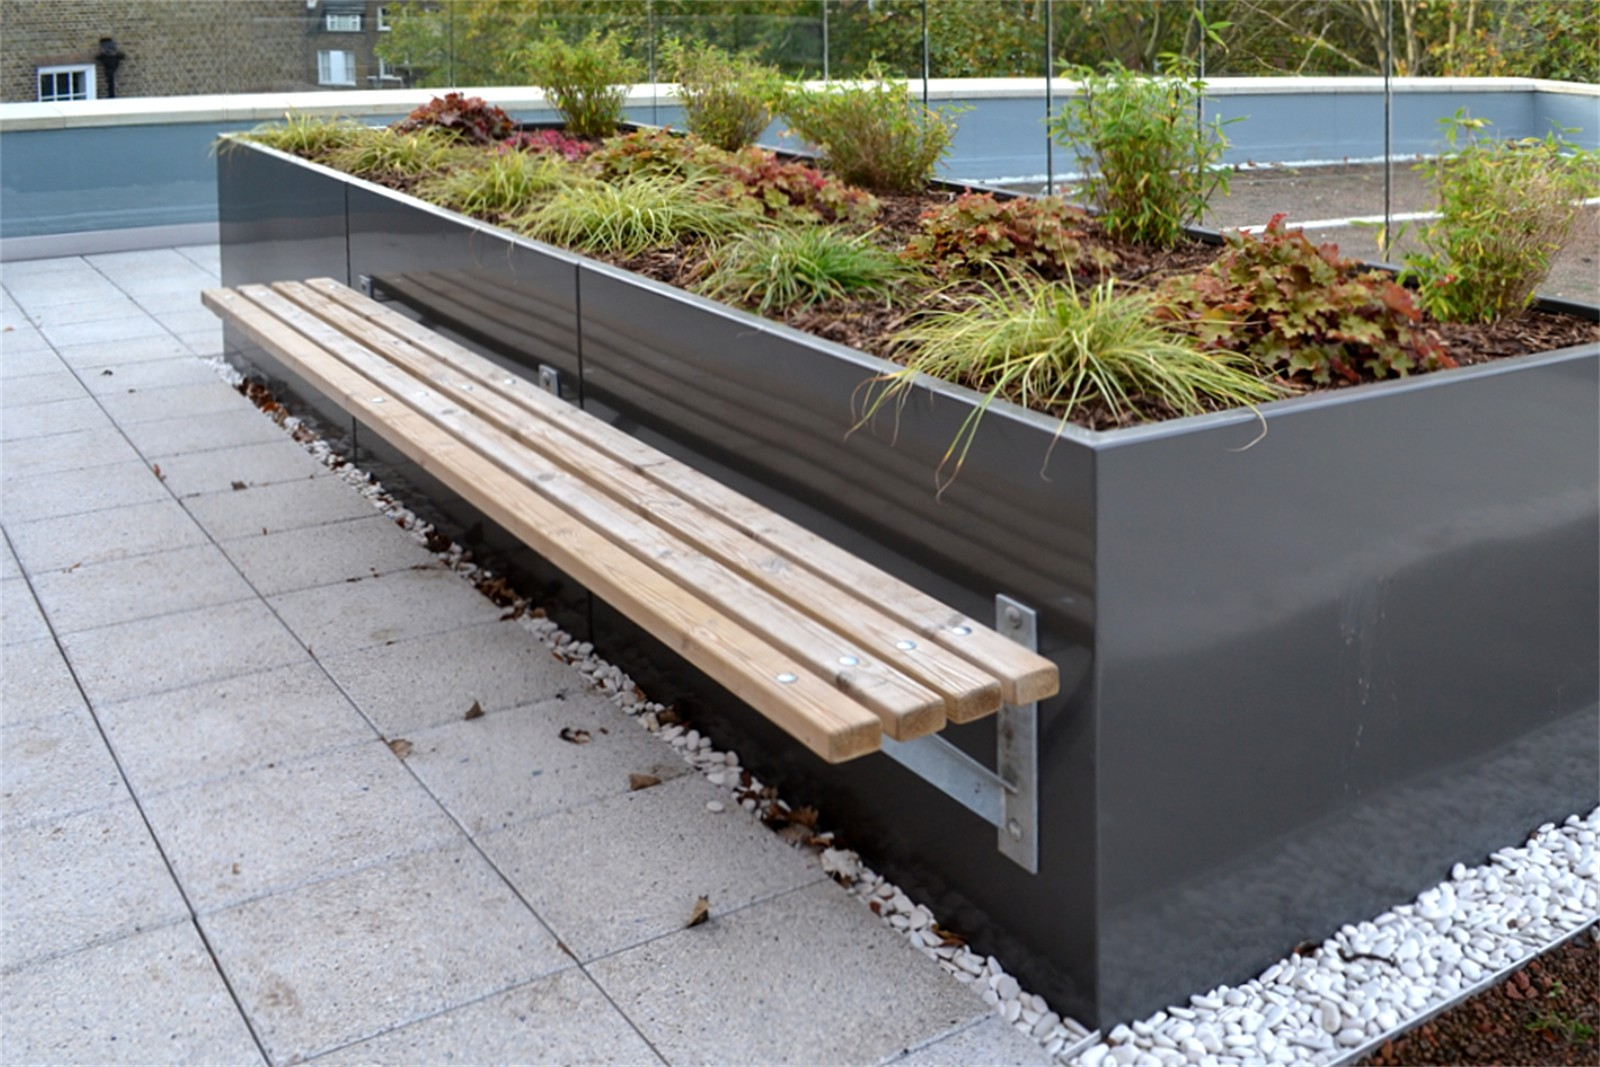 76sbe19 - Bexley long planter bench